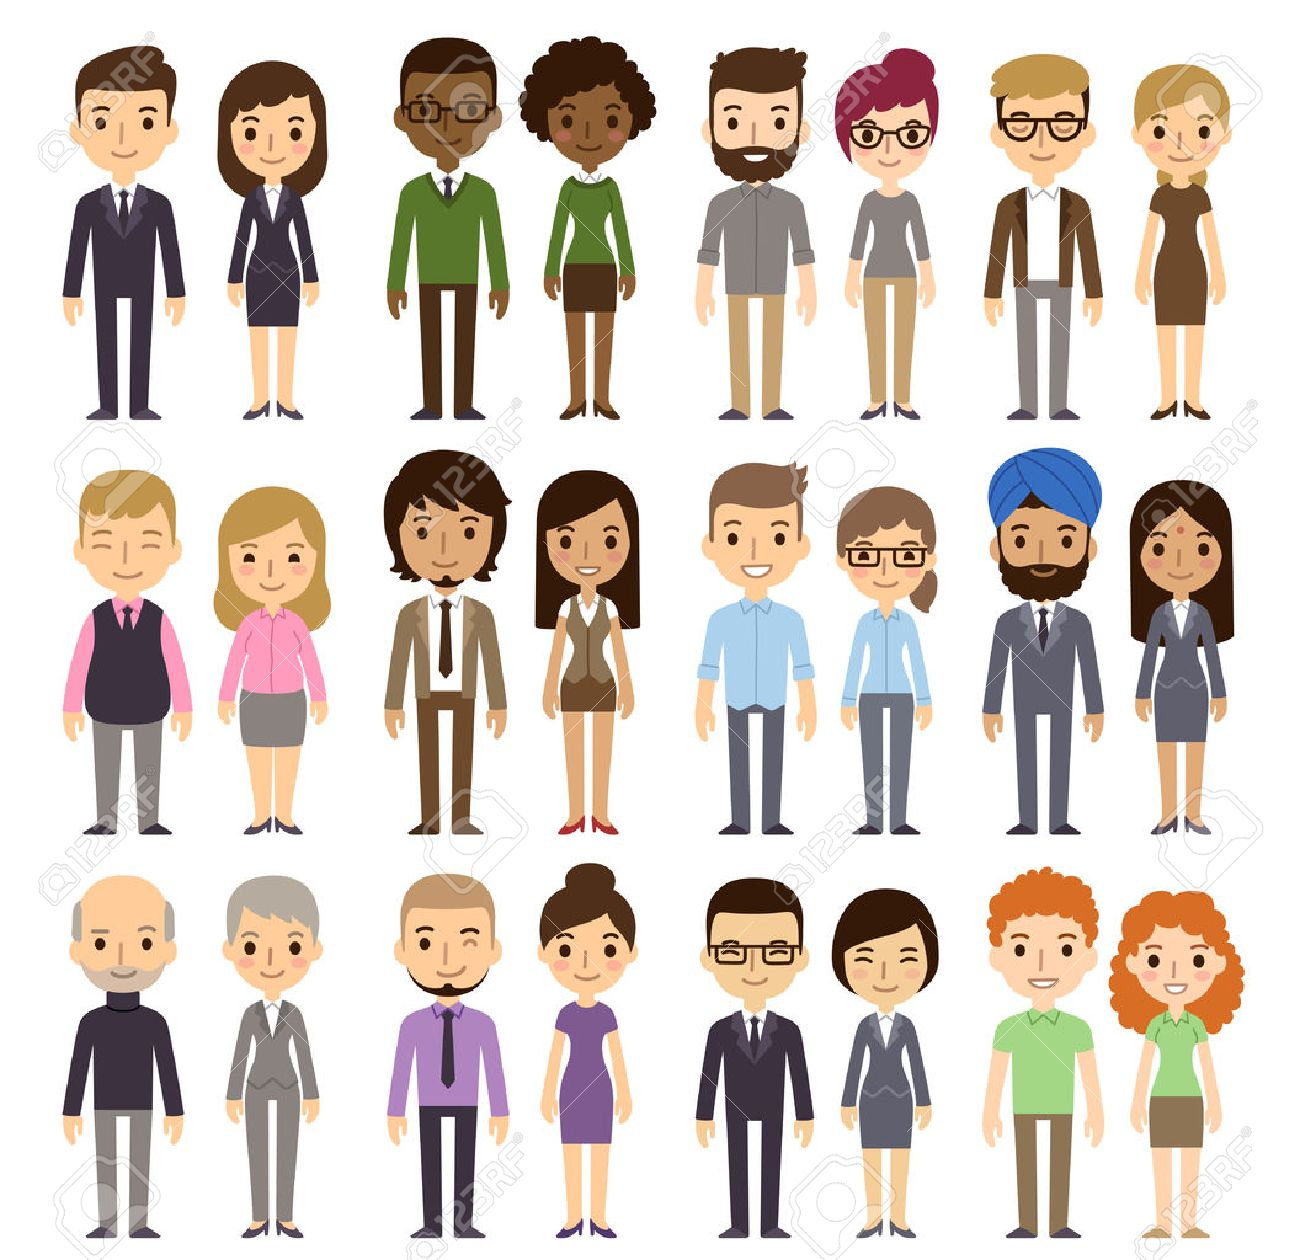 Set of diverse business people isolated on white background. Different nationalities and dress styles. Cute and simple flat cartoon style. Stock Vector - 42186963